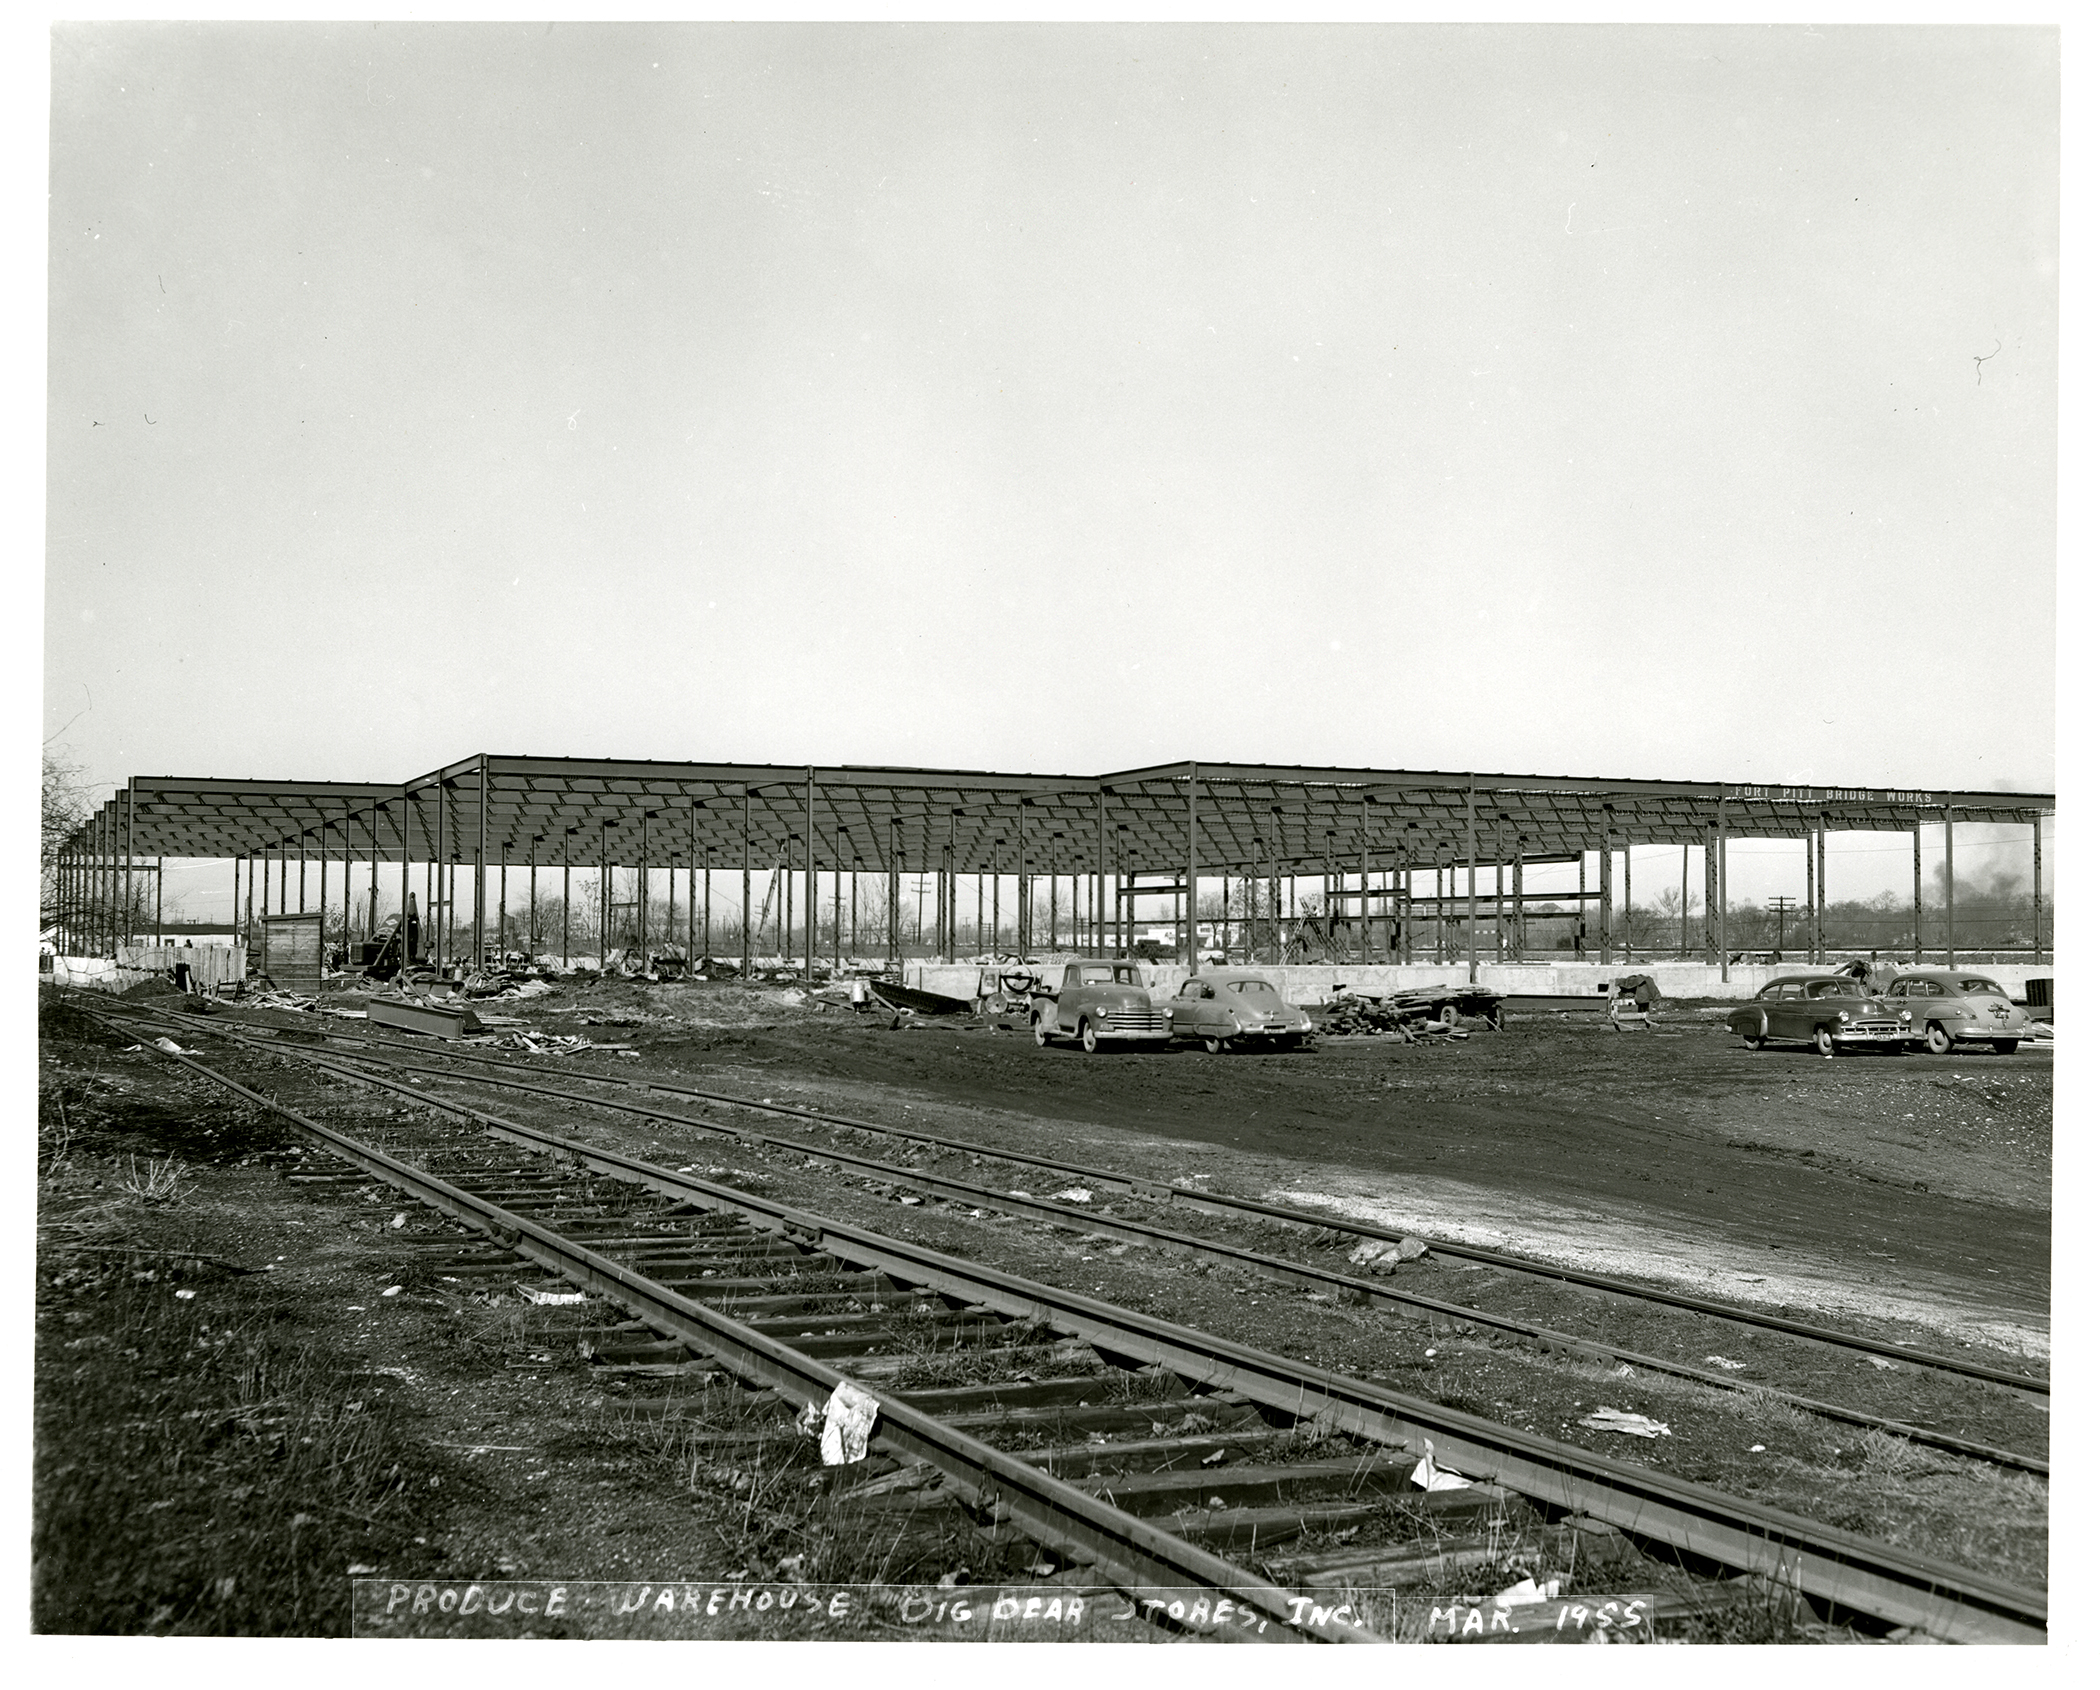 big-bear-warehouse-construction-mar-1955-2